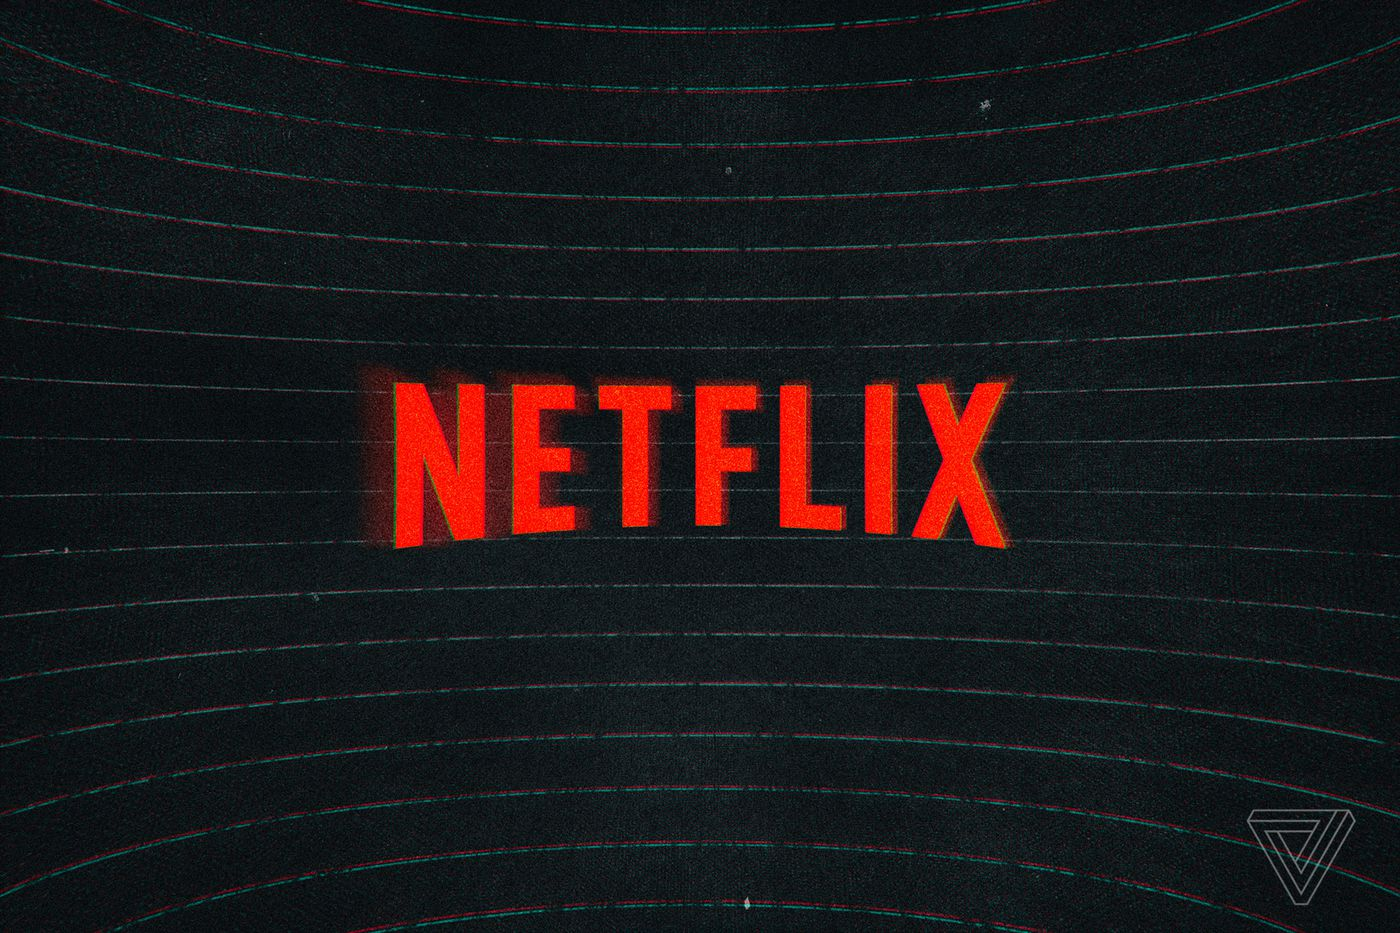 Netflix went on lockdown in Los Angeles after a fake active